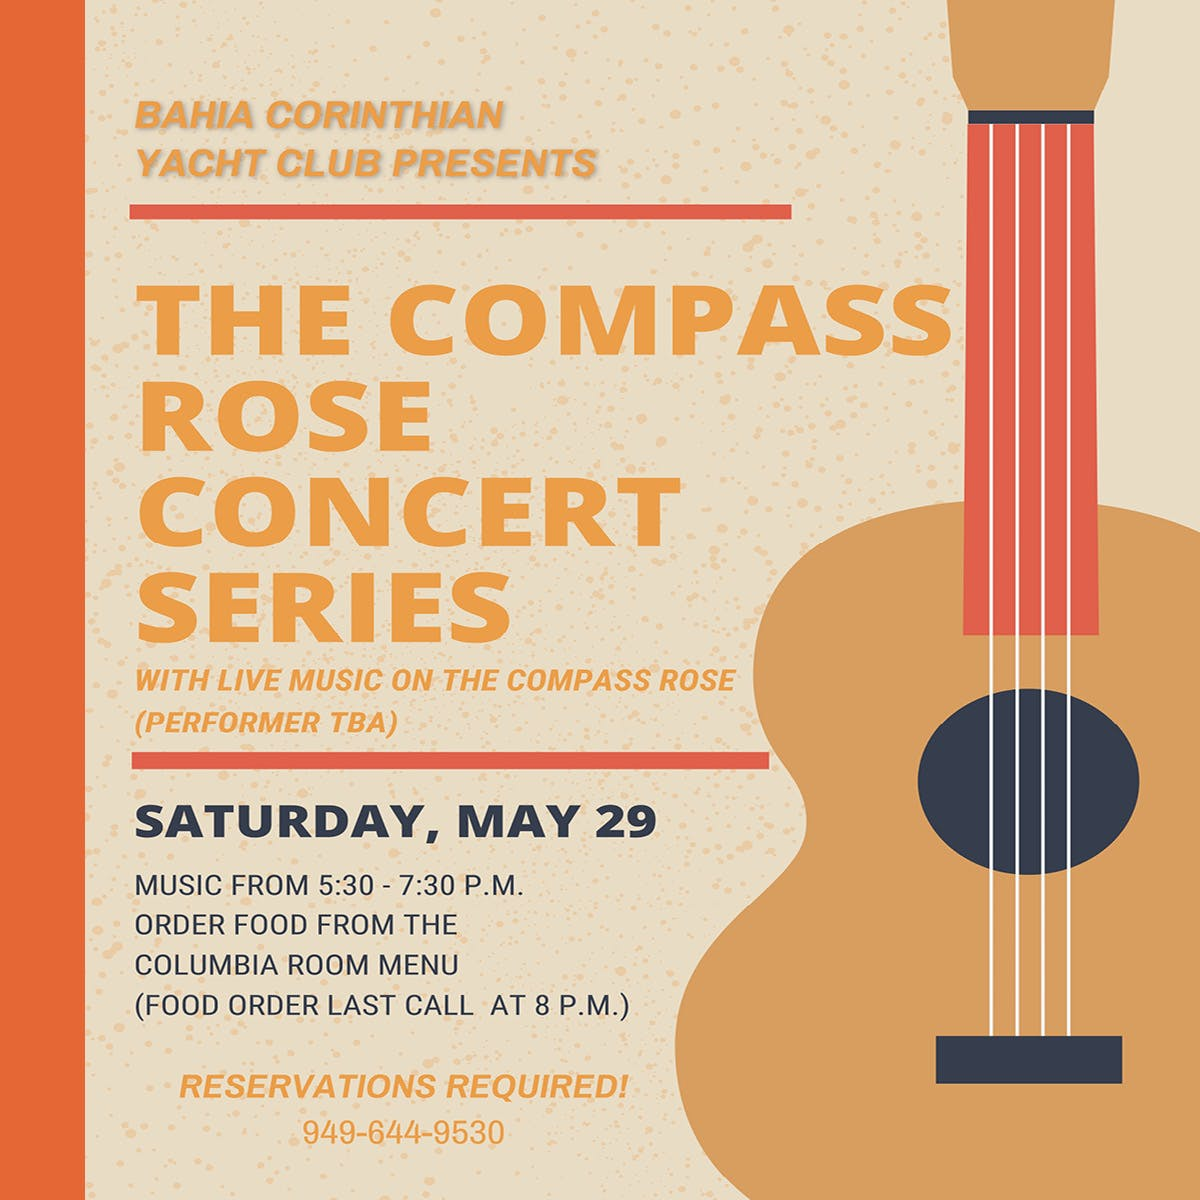 Compass Rose Concert Series May 29